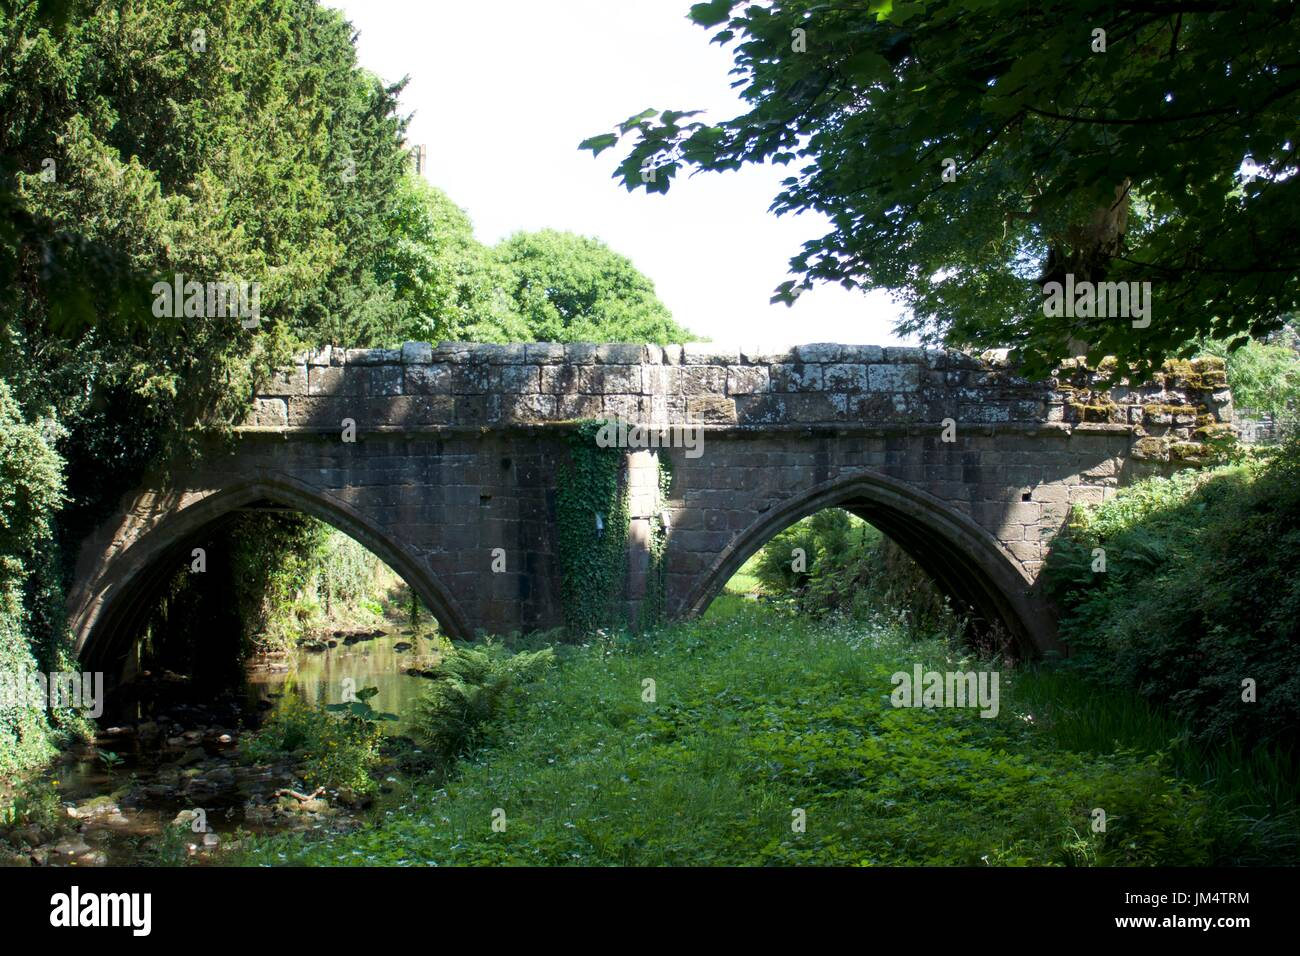 Arched stone bridge over river, Fountains Abbey, North Yorkshire, UK Stock Photo